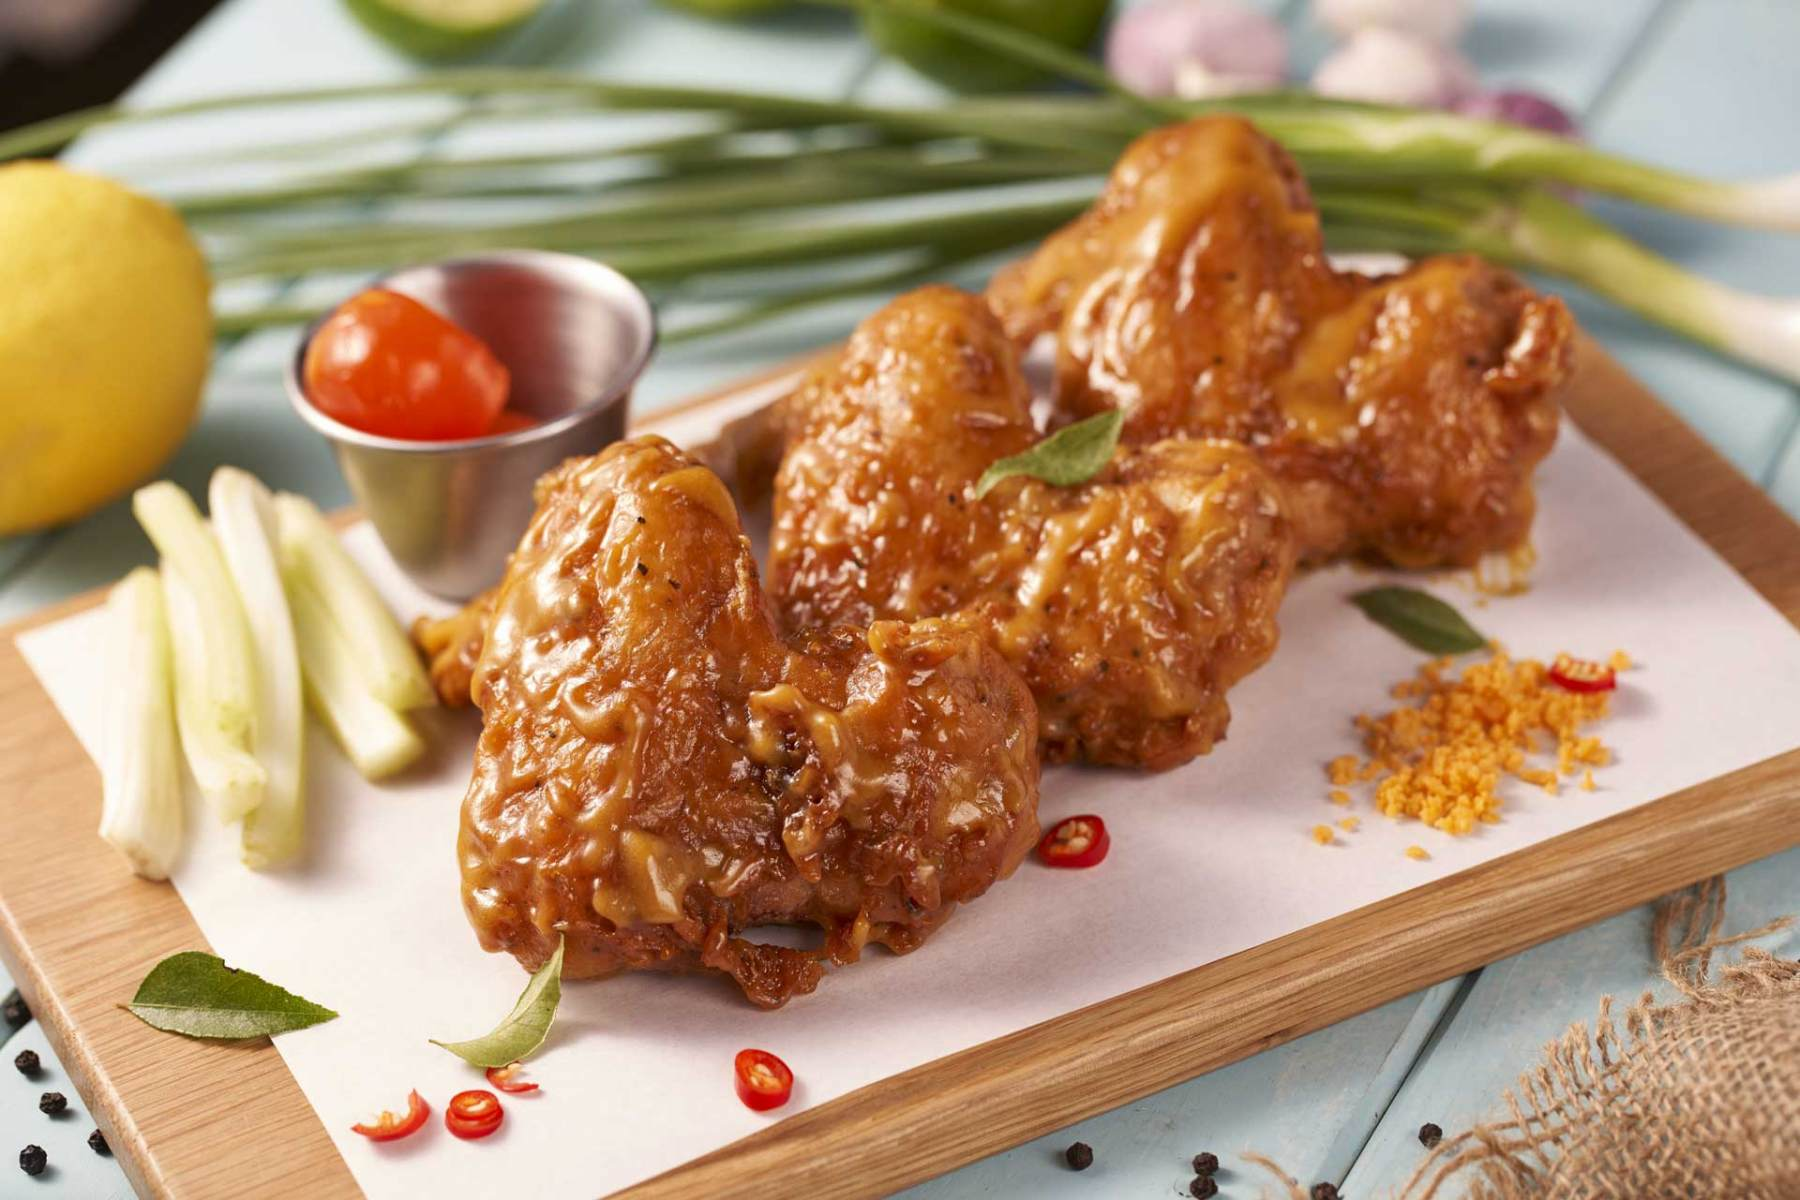 Food-Photography-Singapore-GrillLab-2